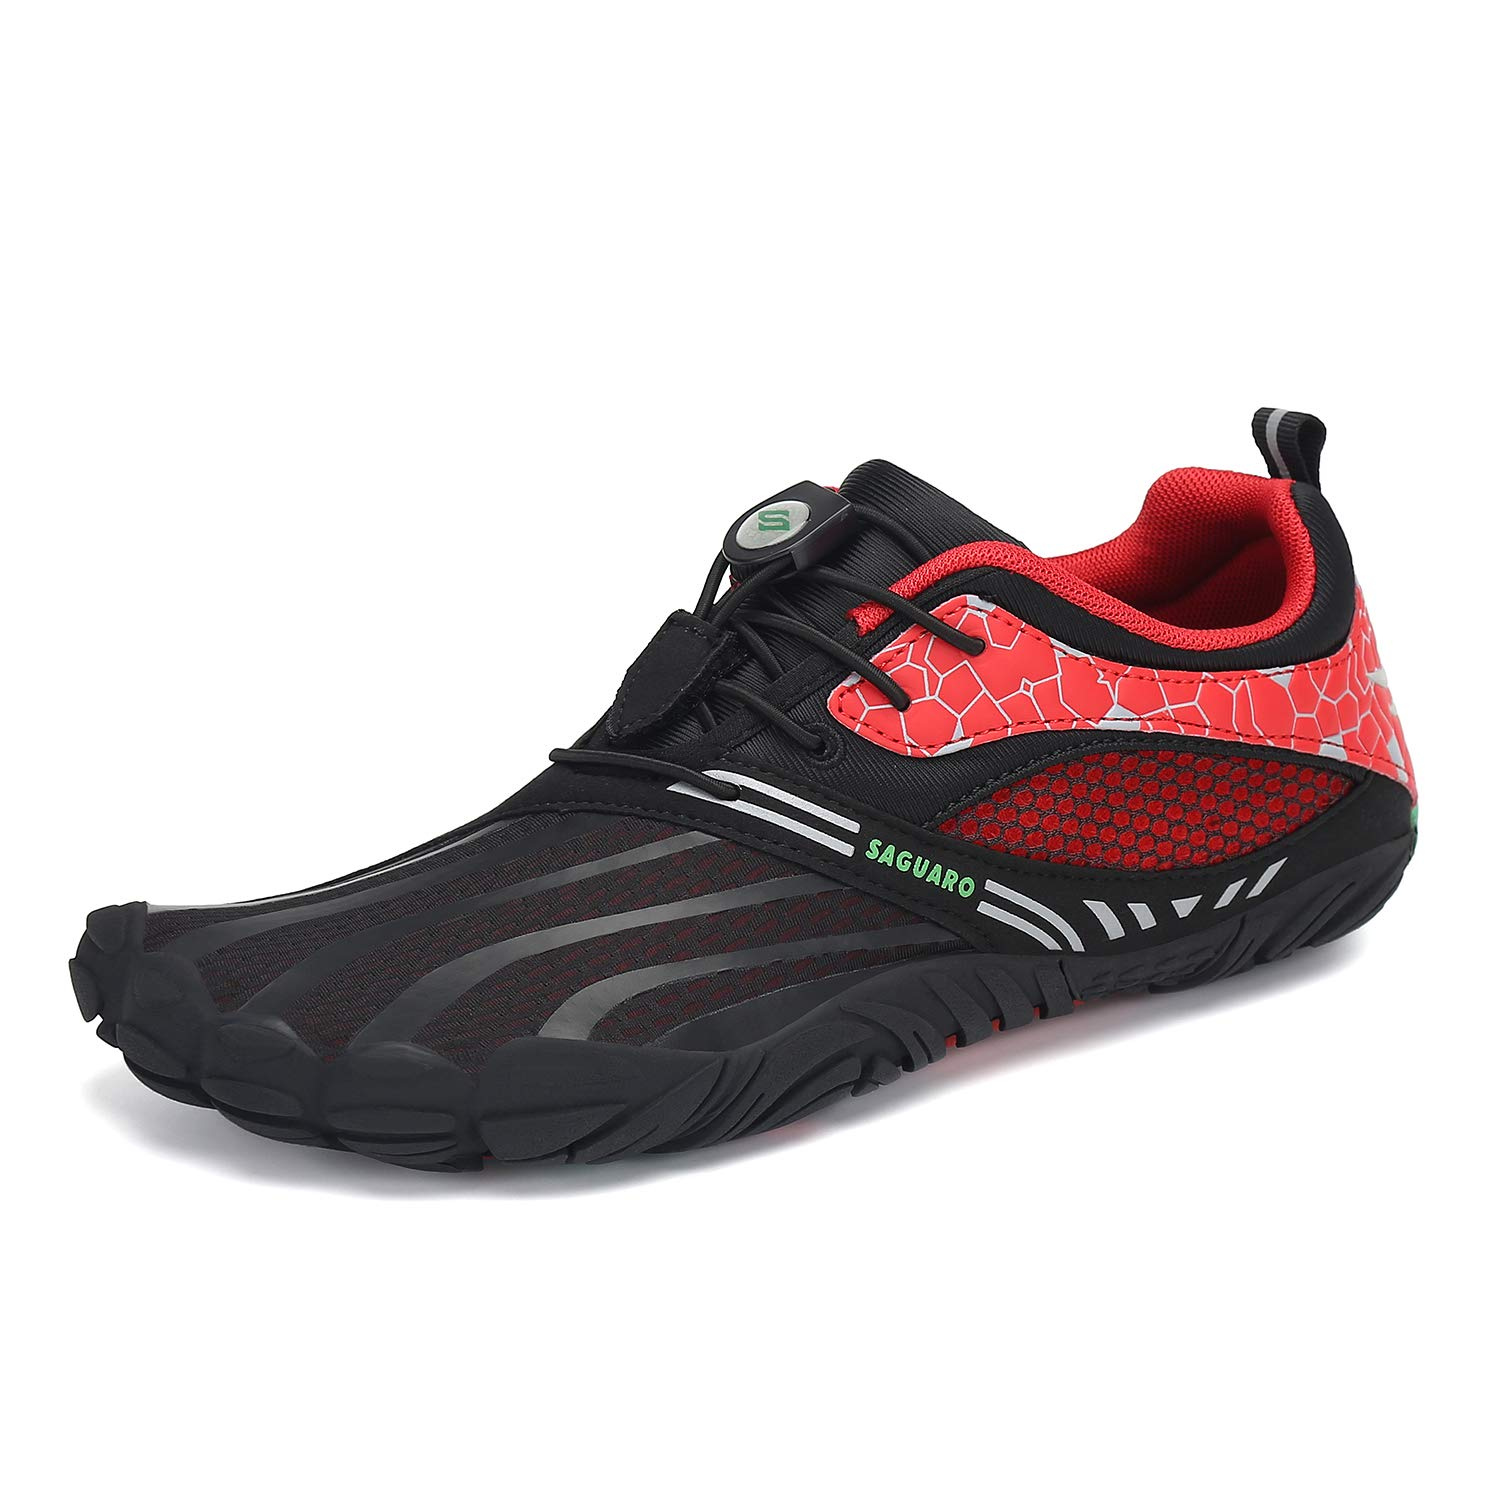 SAGUARO Mens Womens Barefoot Trail Running Shoes Zero Drop Gym Walking  Beach Hiking Aqua Sports Pool Surf Quick Dry Water Shoe Black 6.5 Women/4.5  Men | Trail Running cjp.org.in